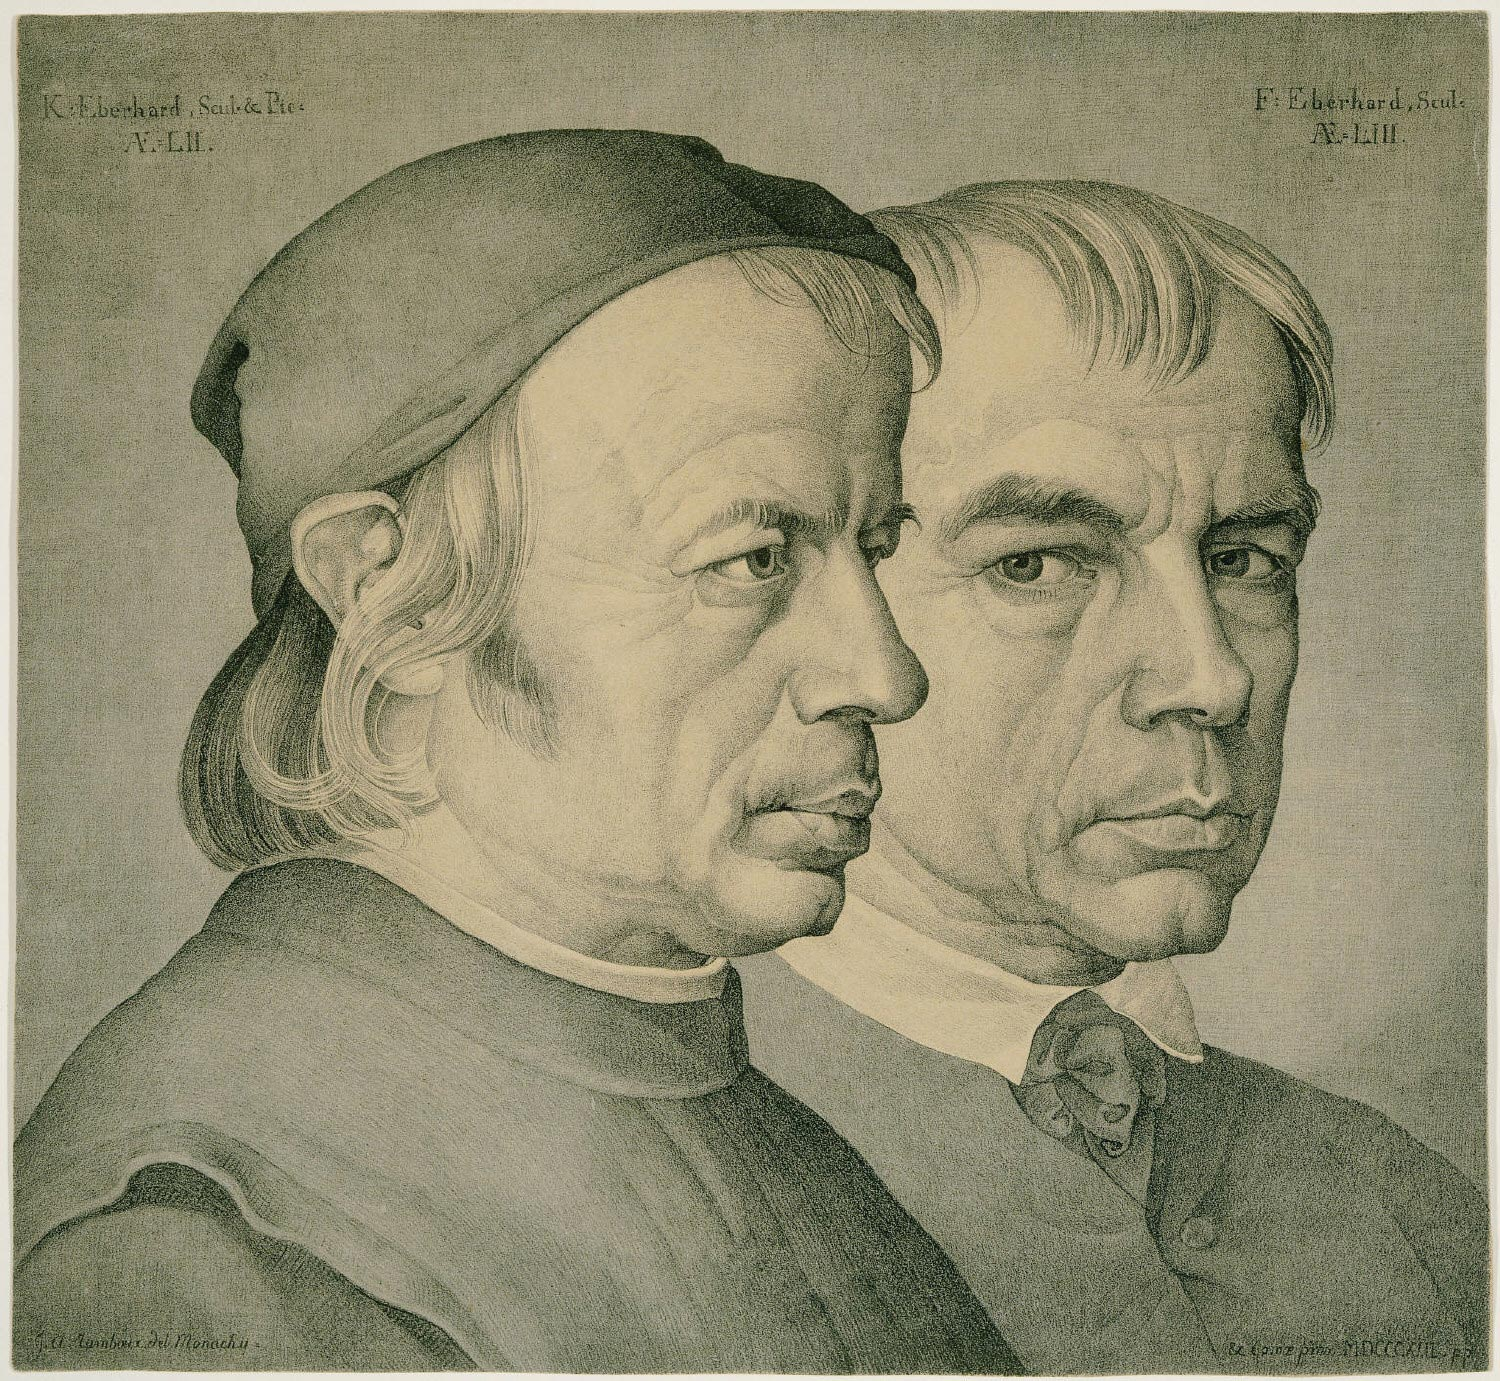 The Brothers Eberhard